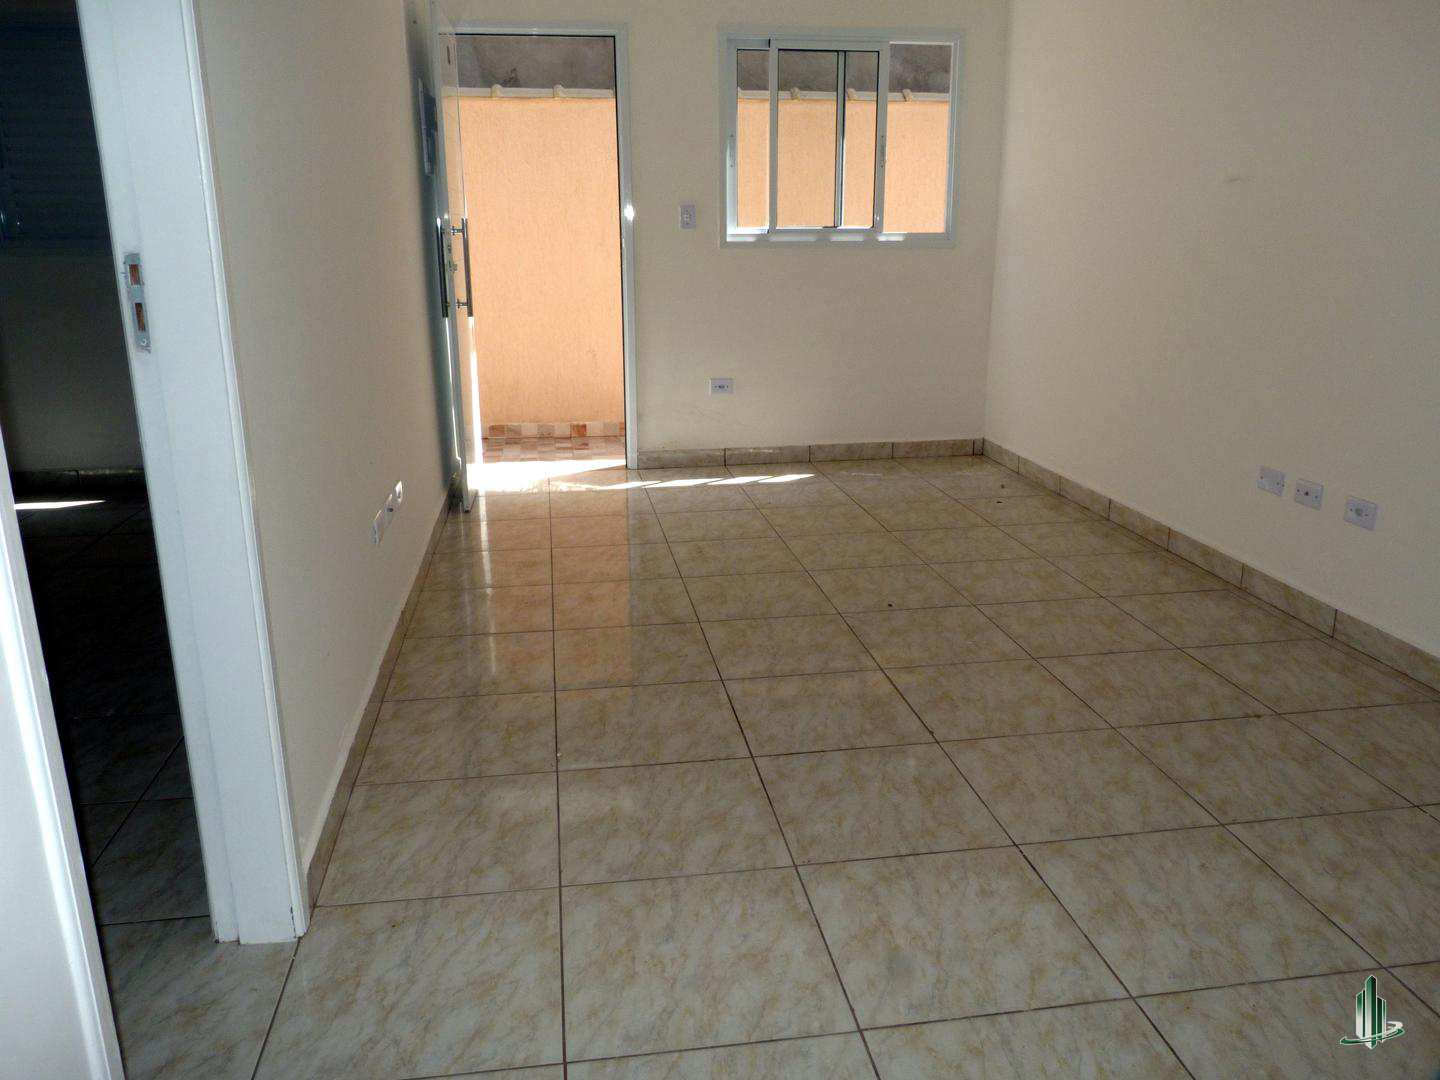 Sobrado de Condomínio com 2 dorms, Sítio do Campo, Praia Grande - R$ 210 mil, Cod: SO1159